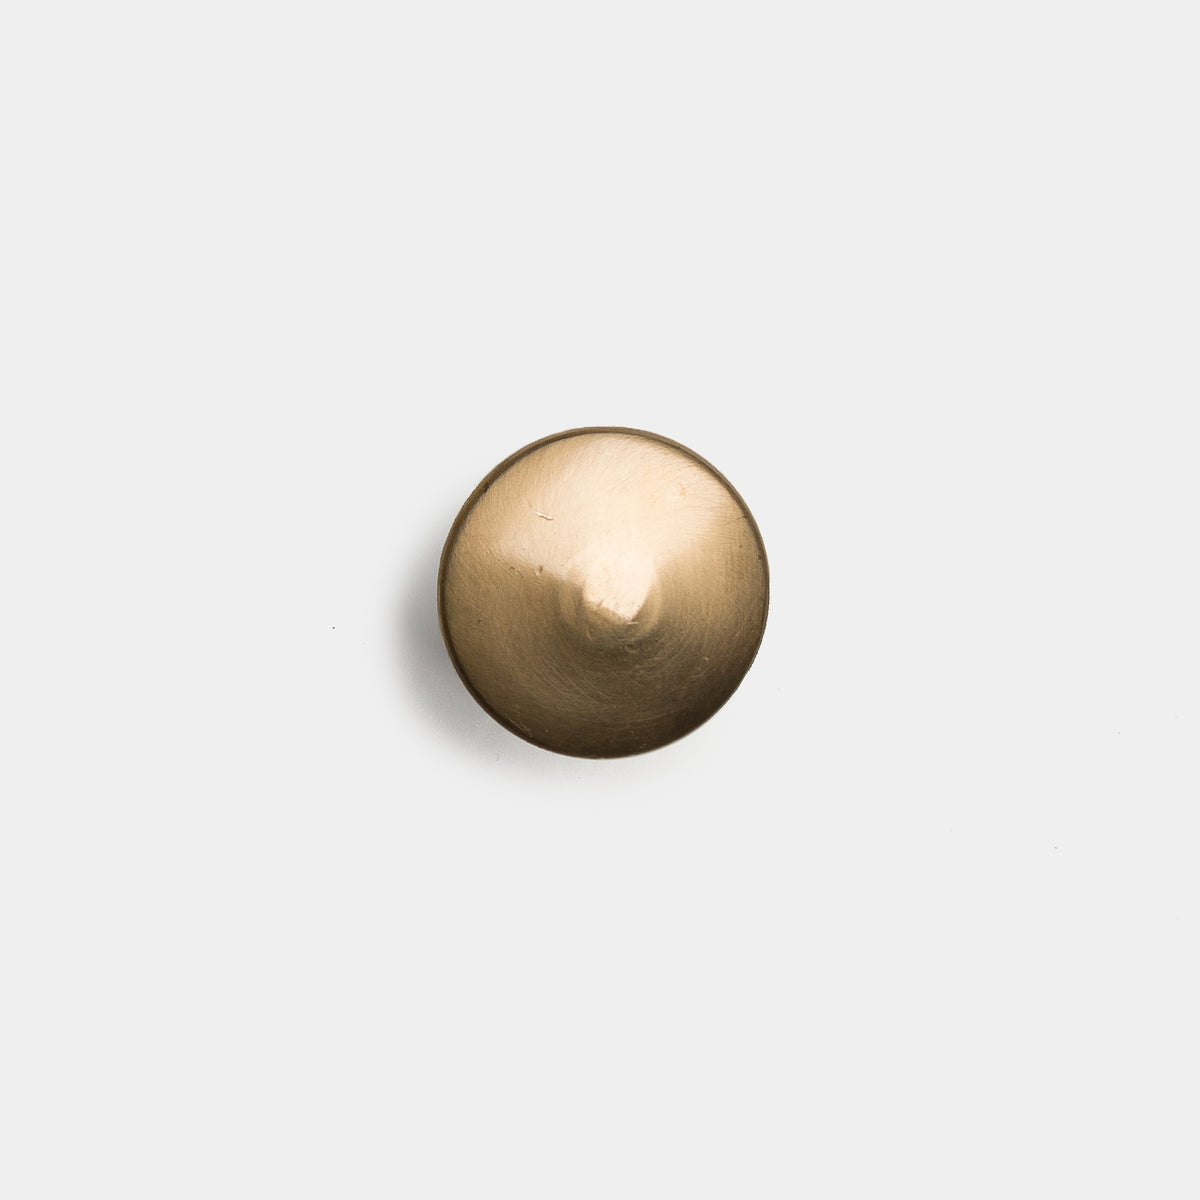 Load image into Gallery viewer, Brass Knob - Large - Home Accessories - Hardware – Shoppe Amber Interiors